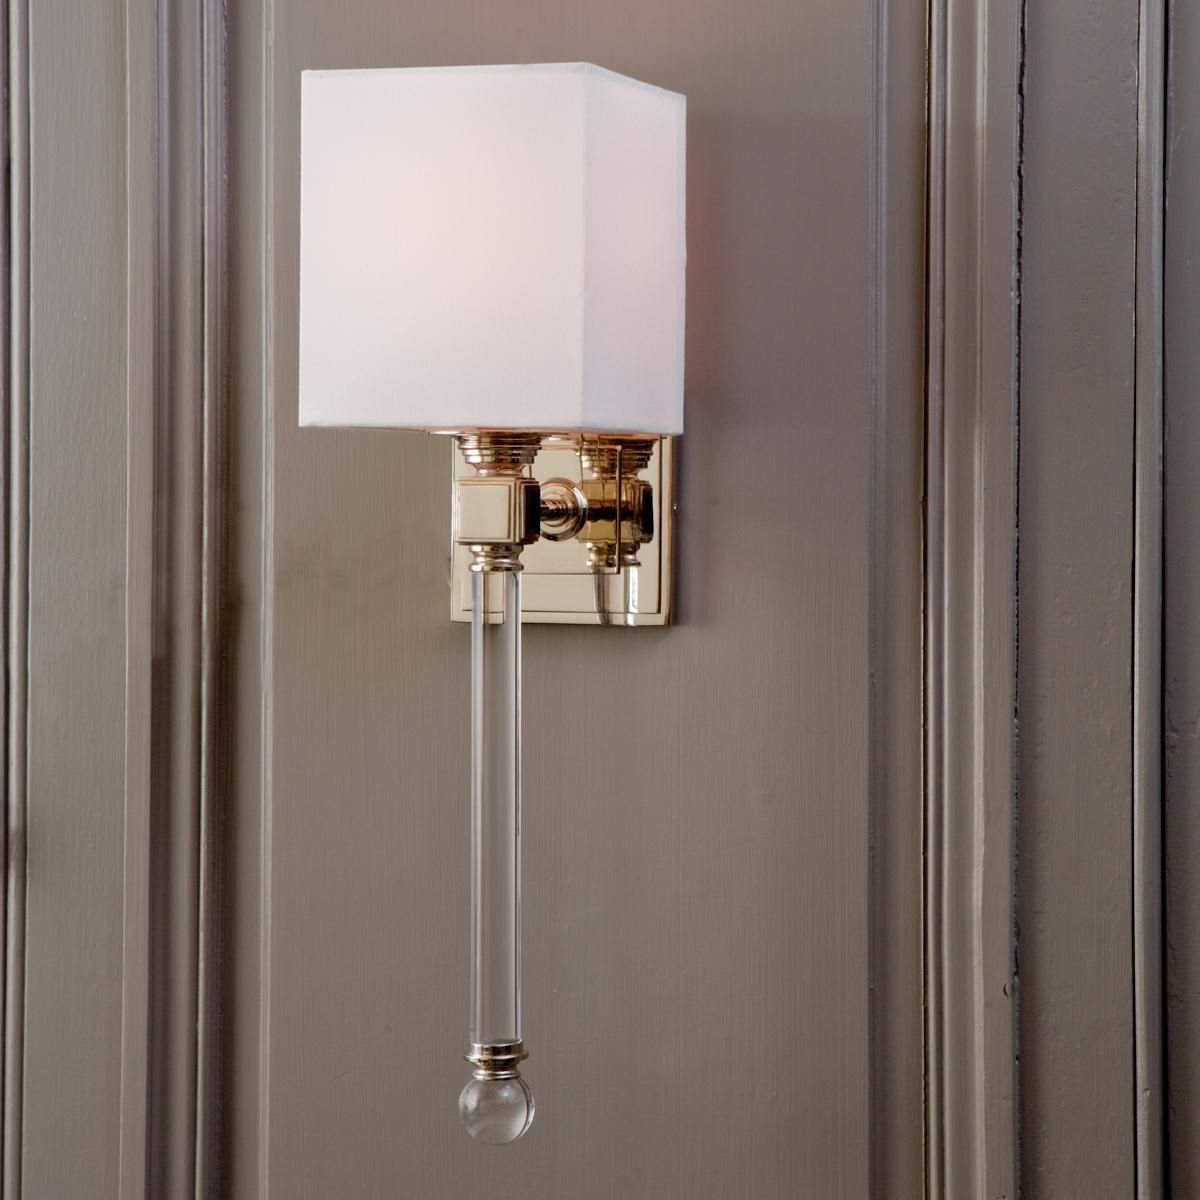 Wall Sconce With Crystal Ball : Chic Sophisticate Crystal Torch Wall Sconce Torches, Wall sconces and Crystals